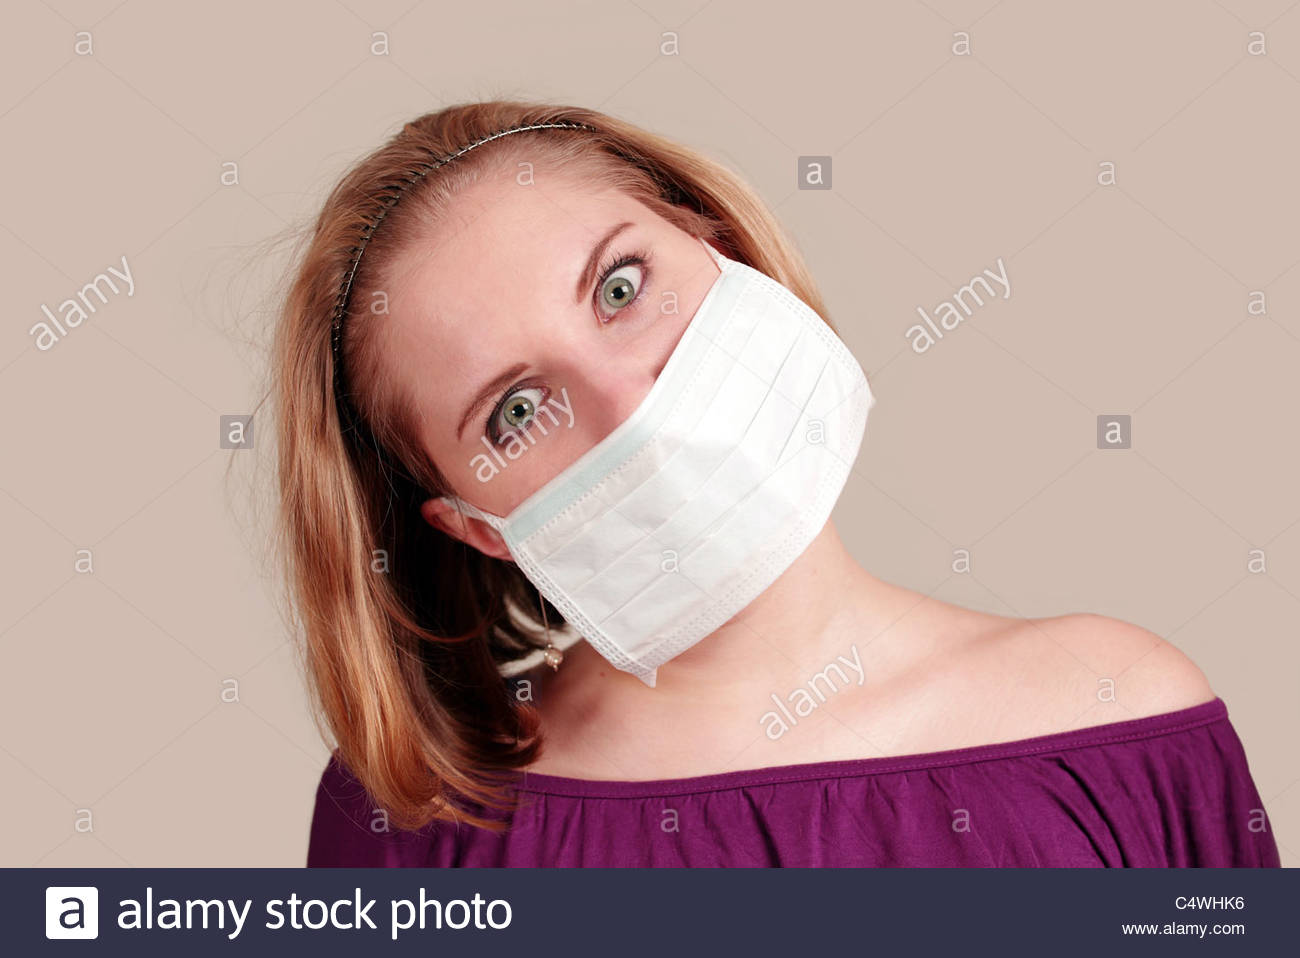 Anti-pollution girl with face mask - Stock Image